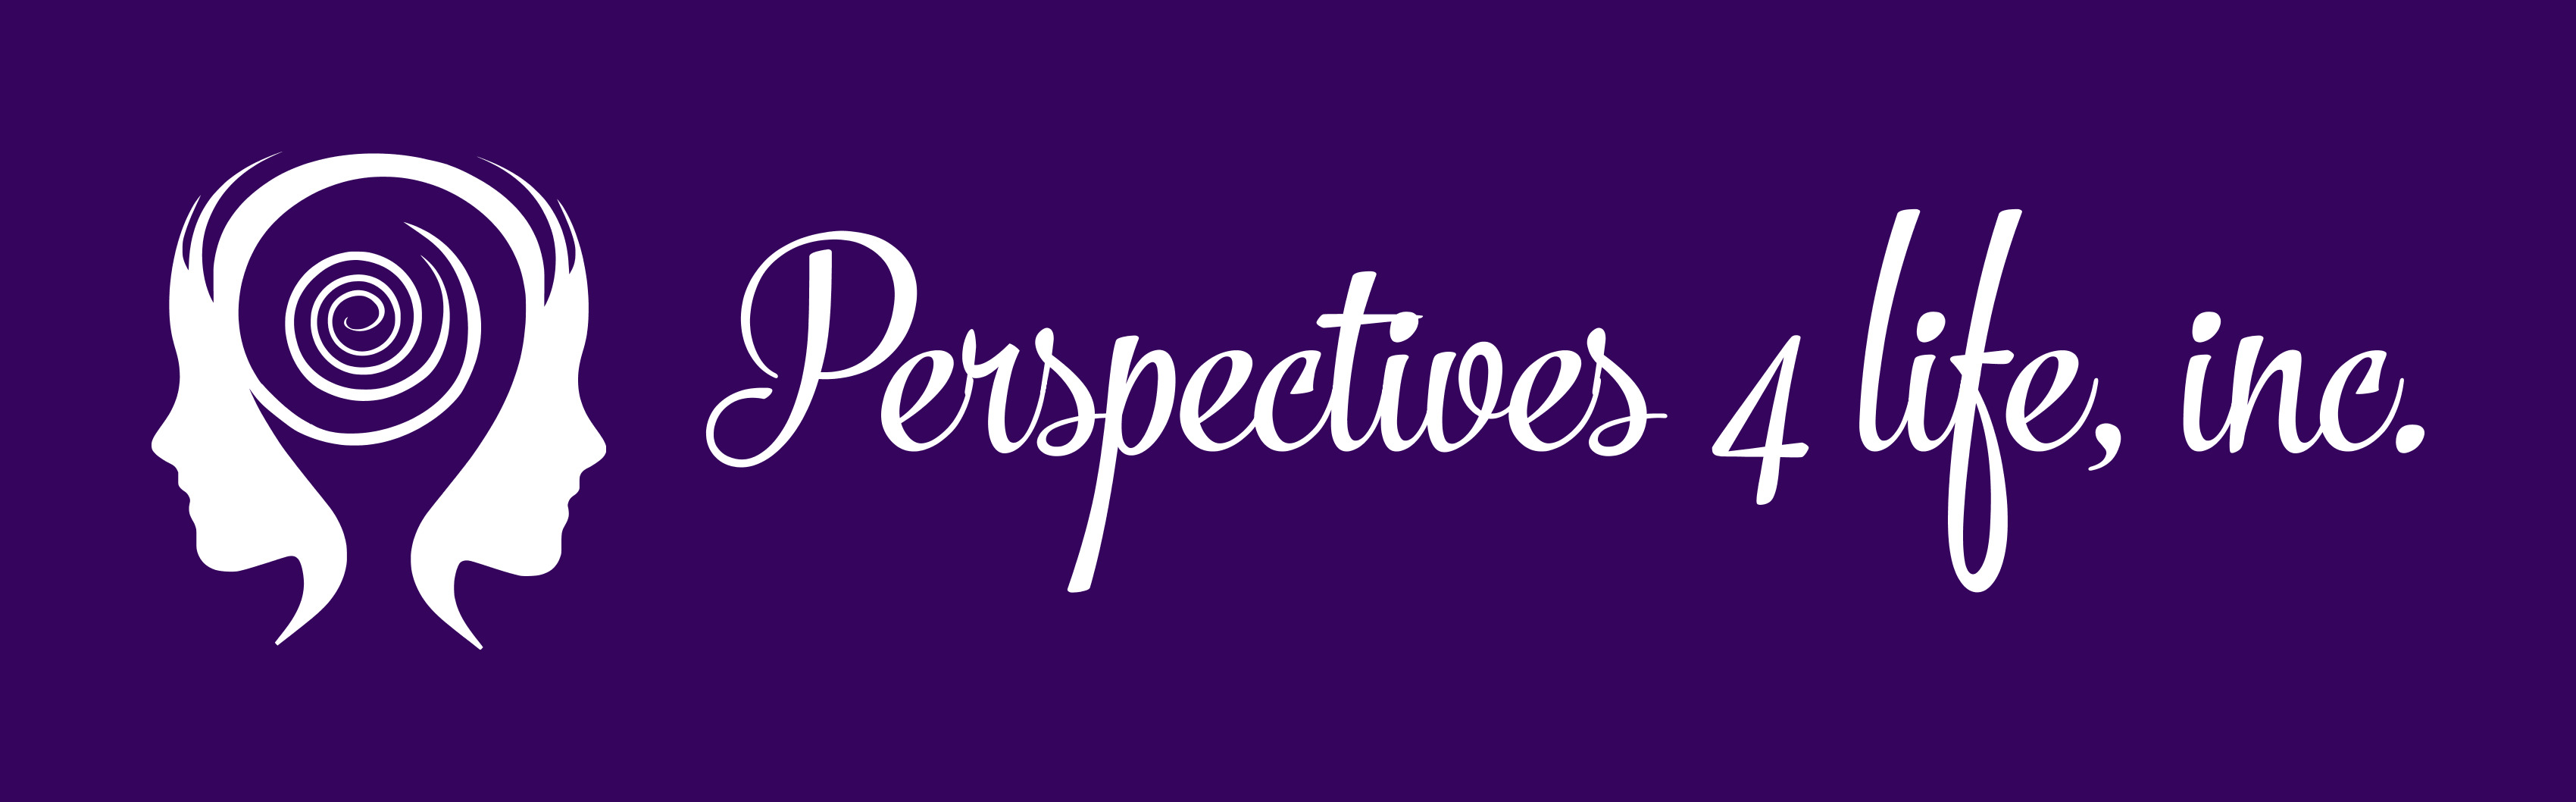 Perspectives 4 Life Banner